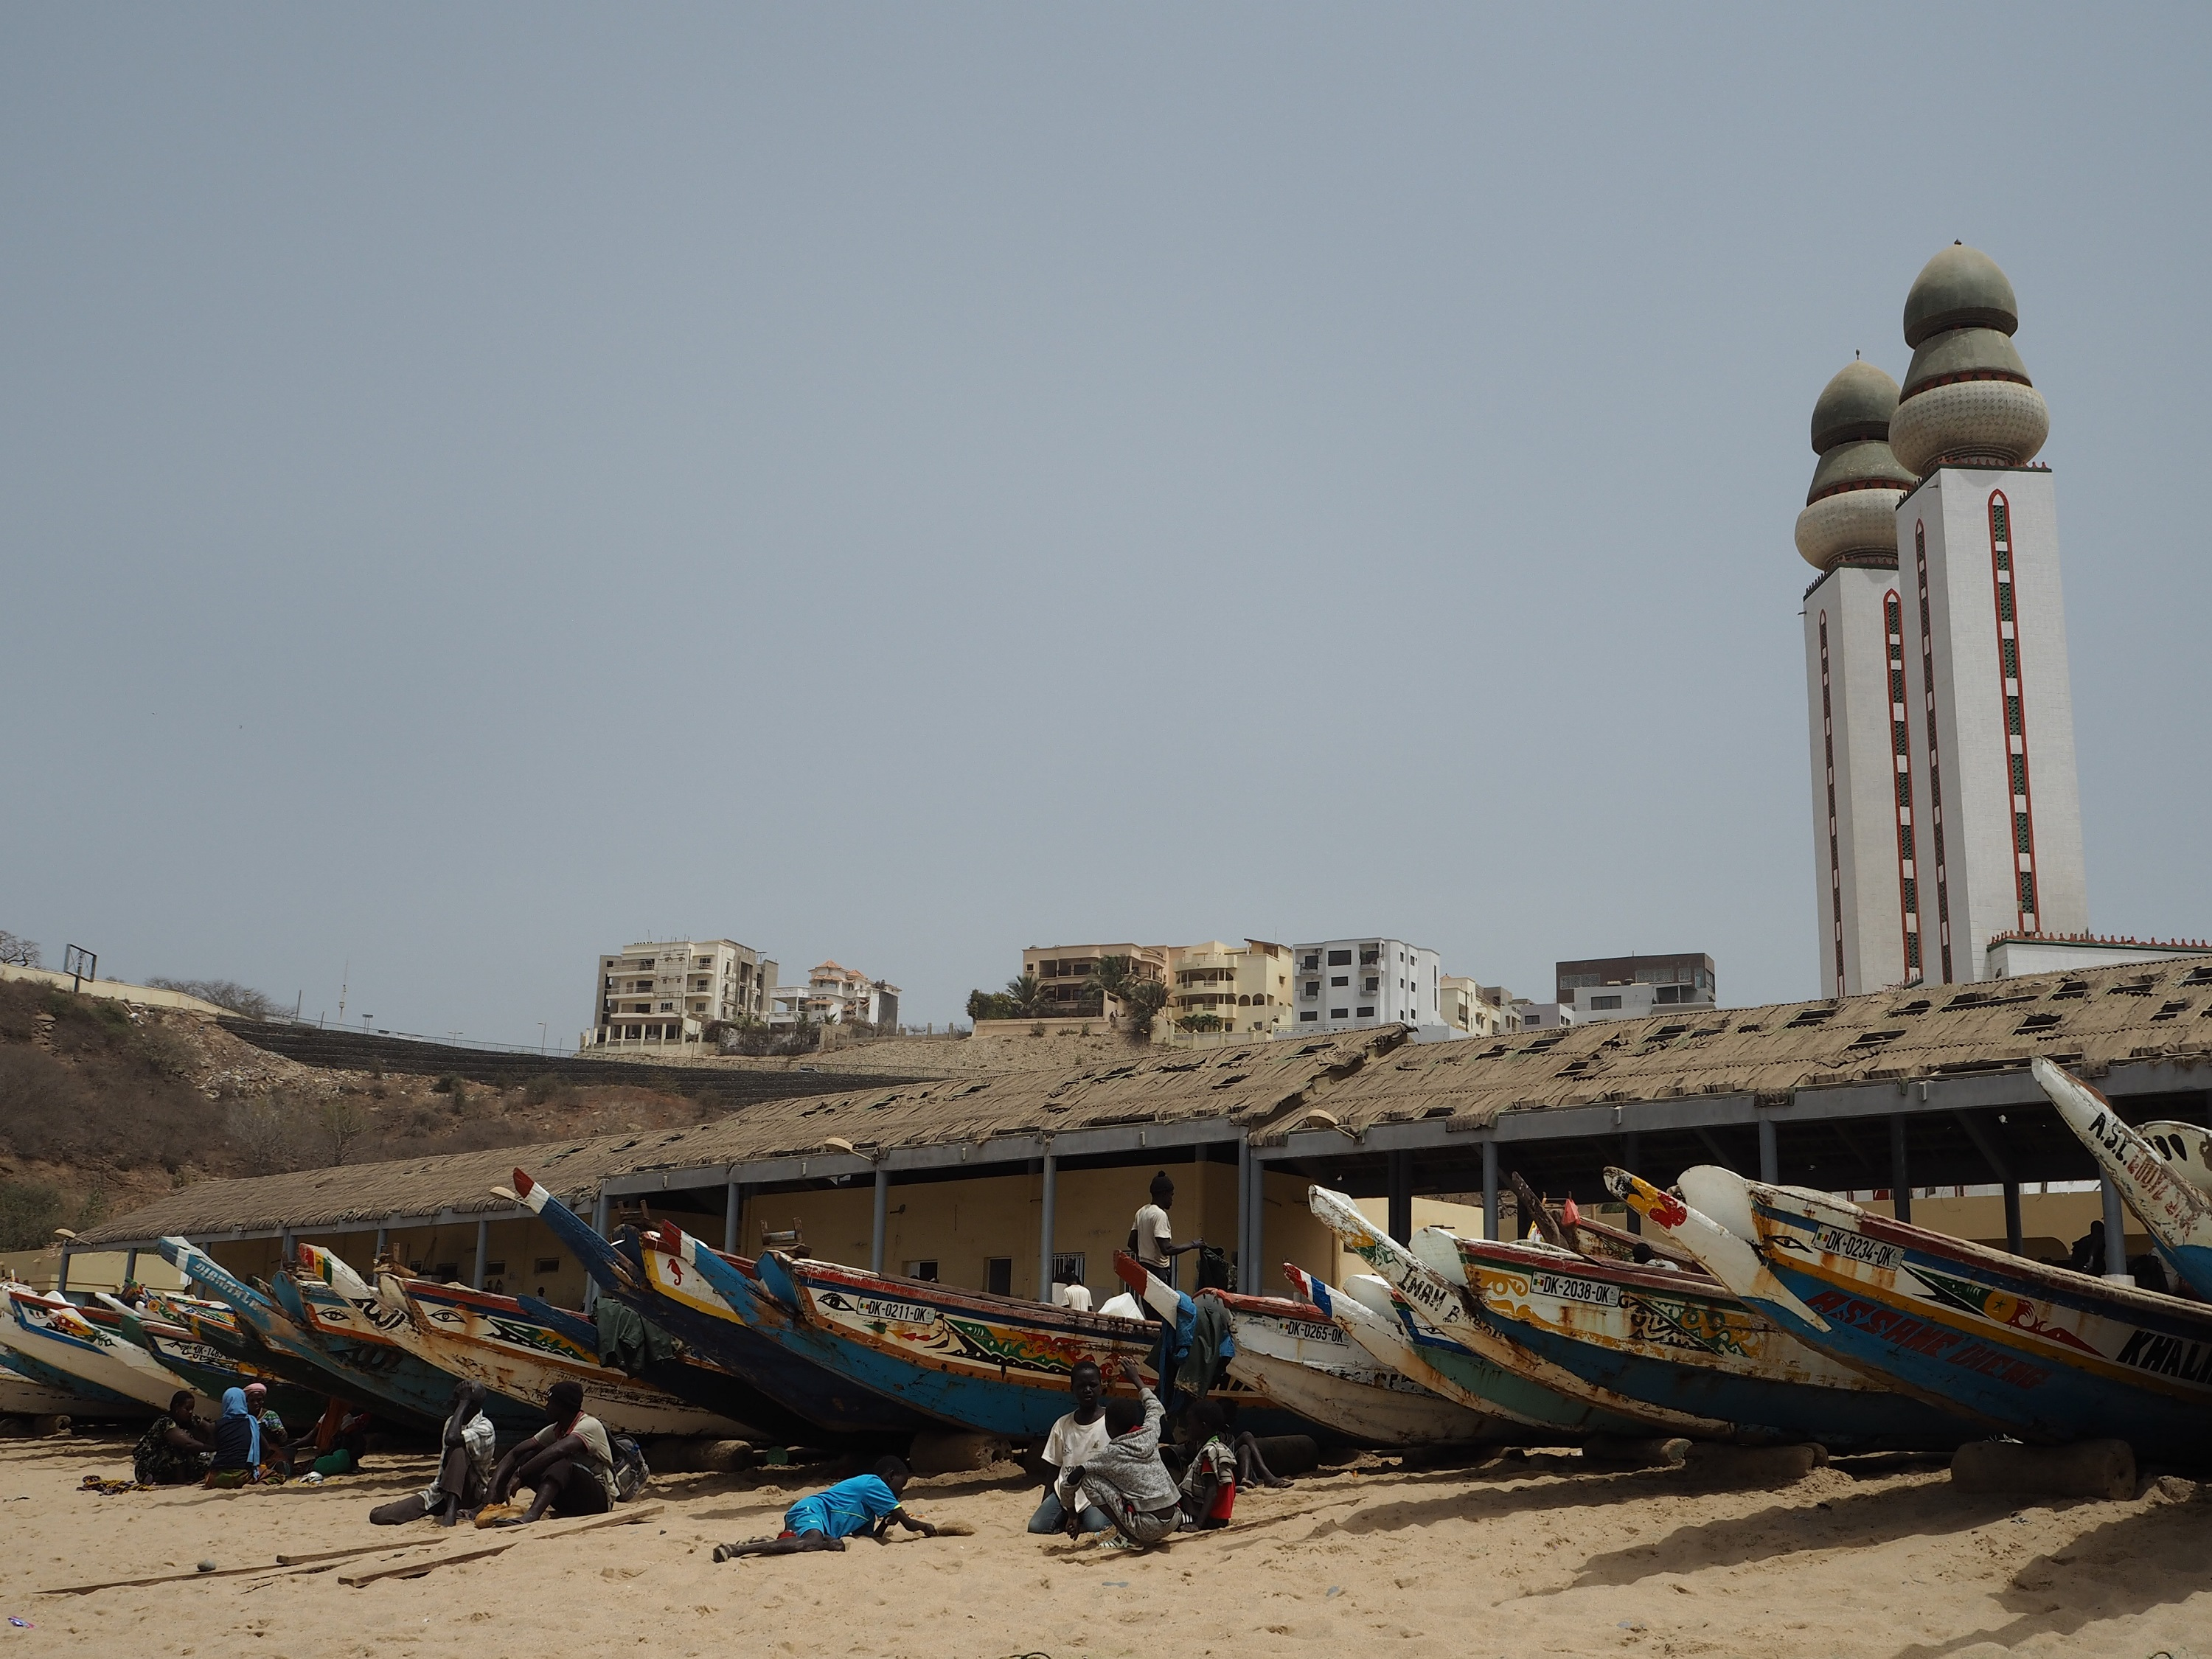 Boats on the beach in Senegal